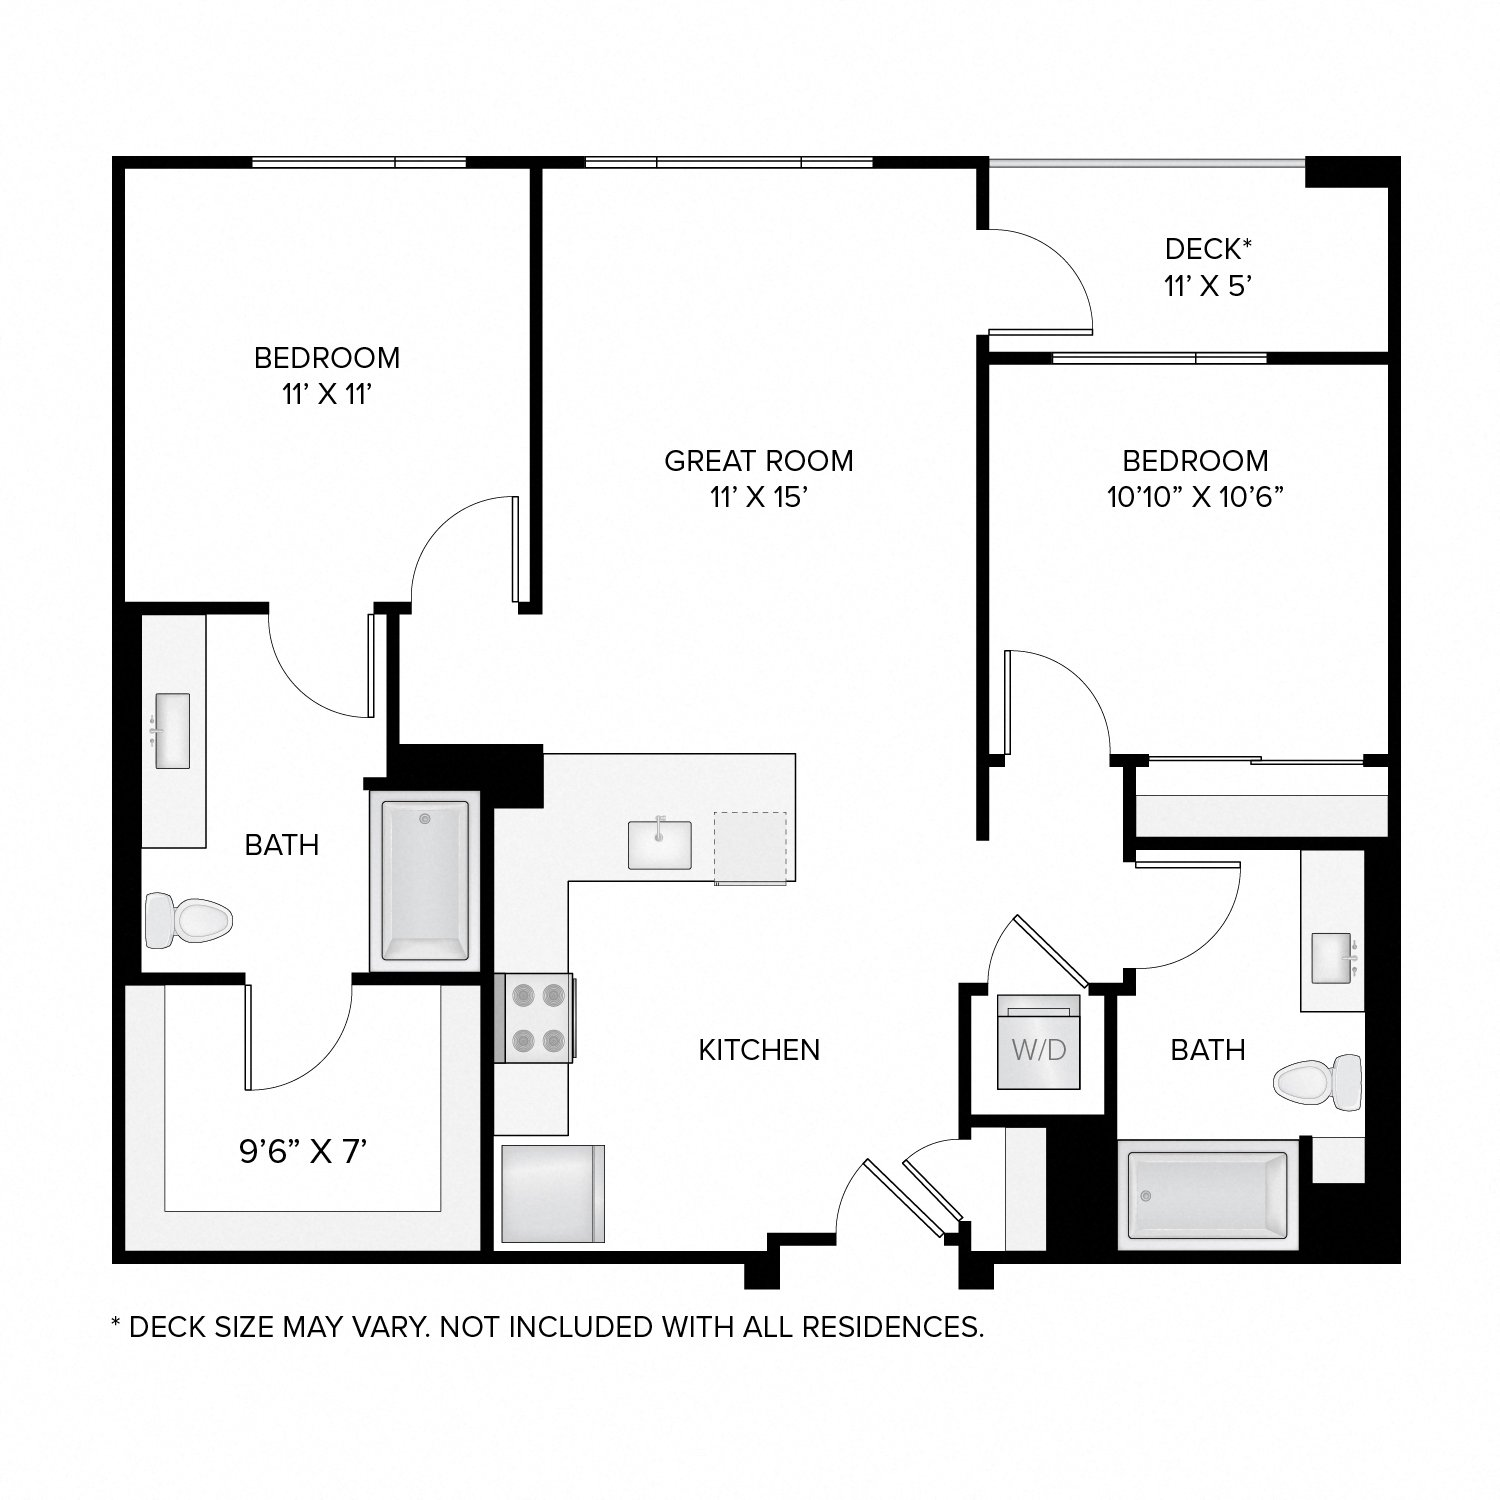 Diagram of the Madison Deluxe floor plan. Two bedrooms, two bathrooms, an open kitchen and living area, a washer dryer, and in select residences, a deck.